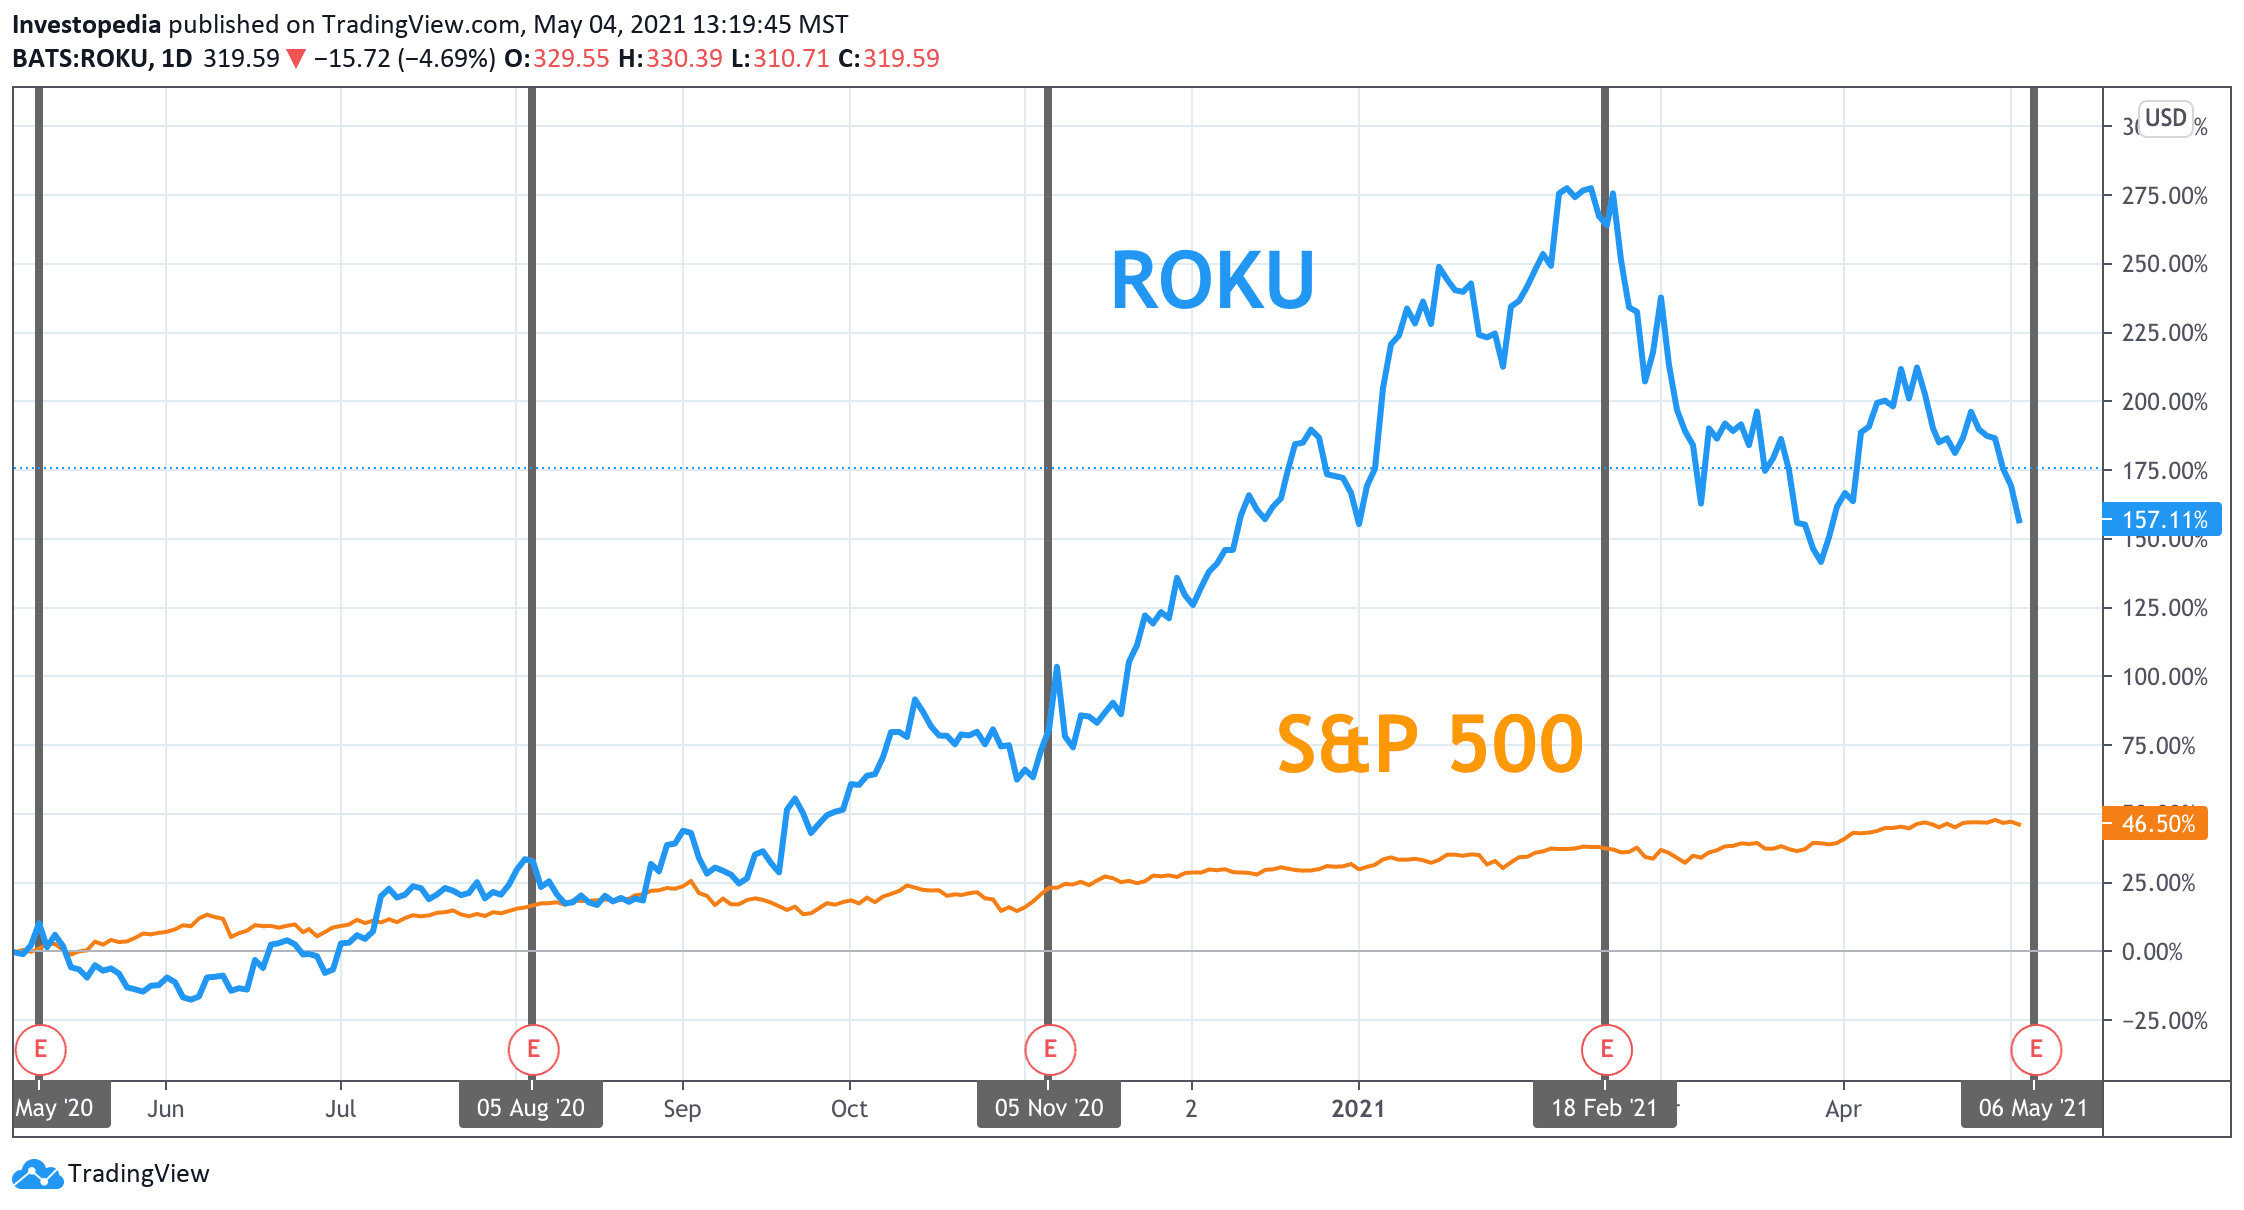 One Year Total Return for S&P 500 and Roku